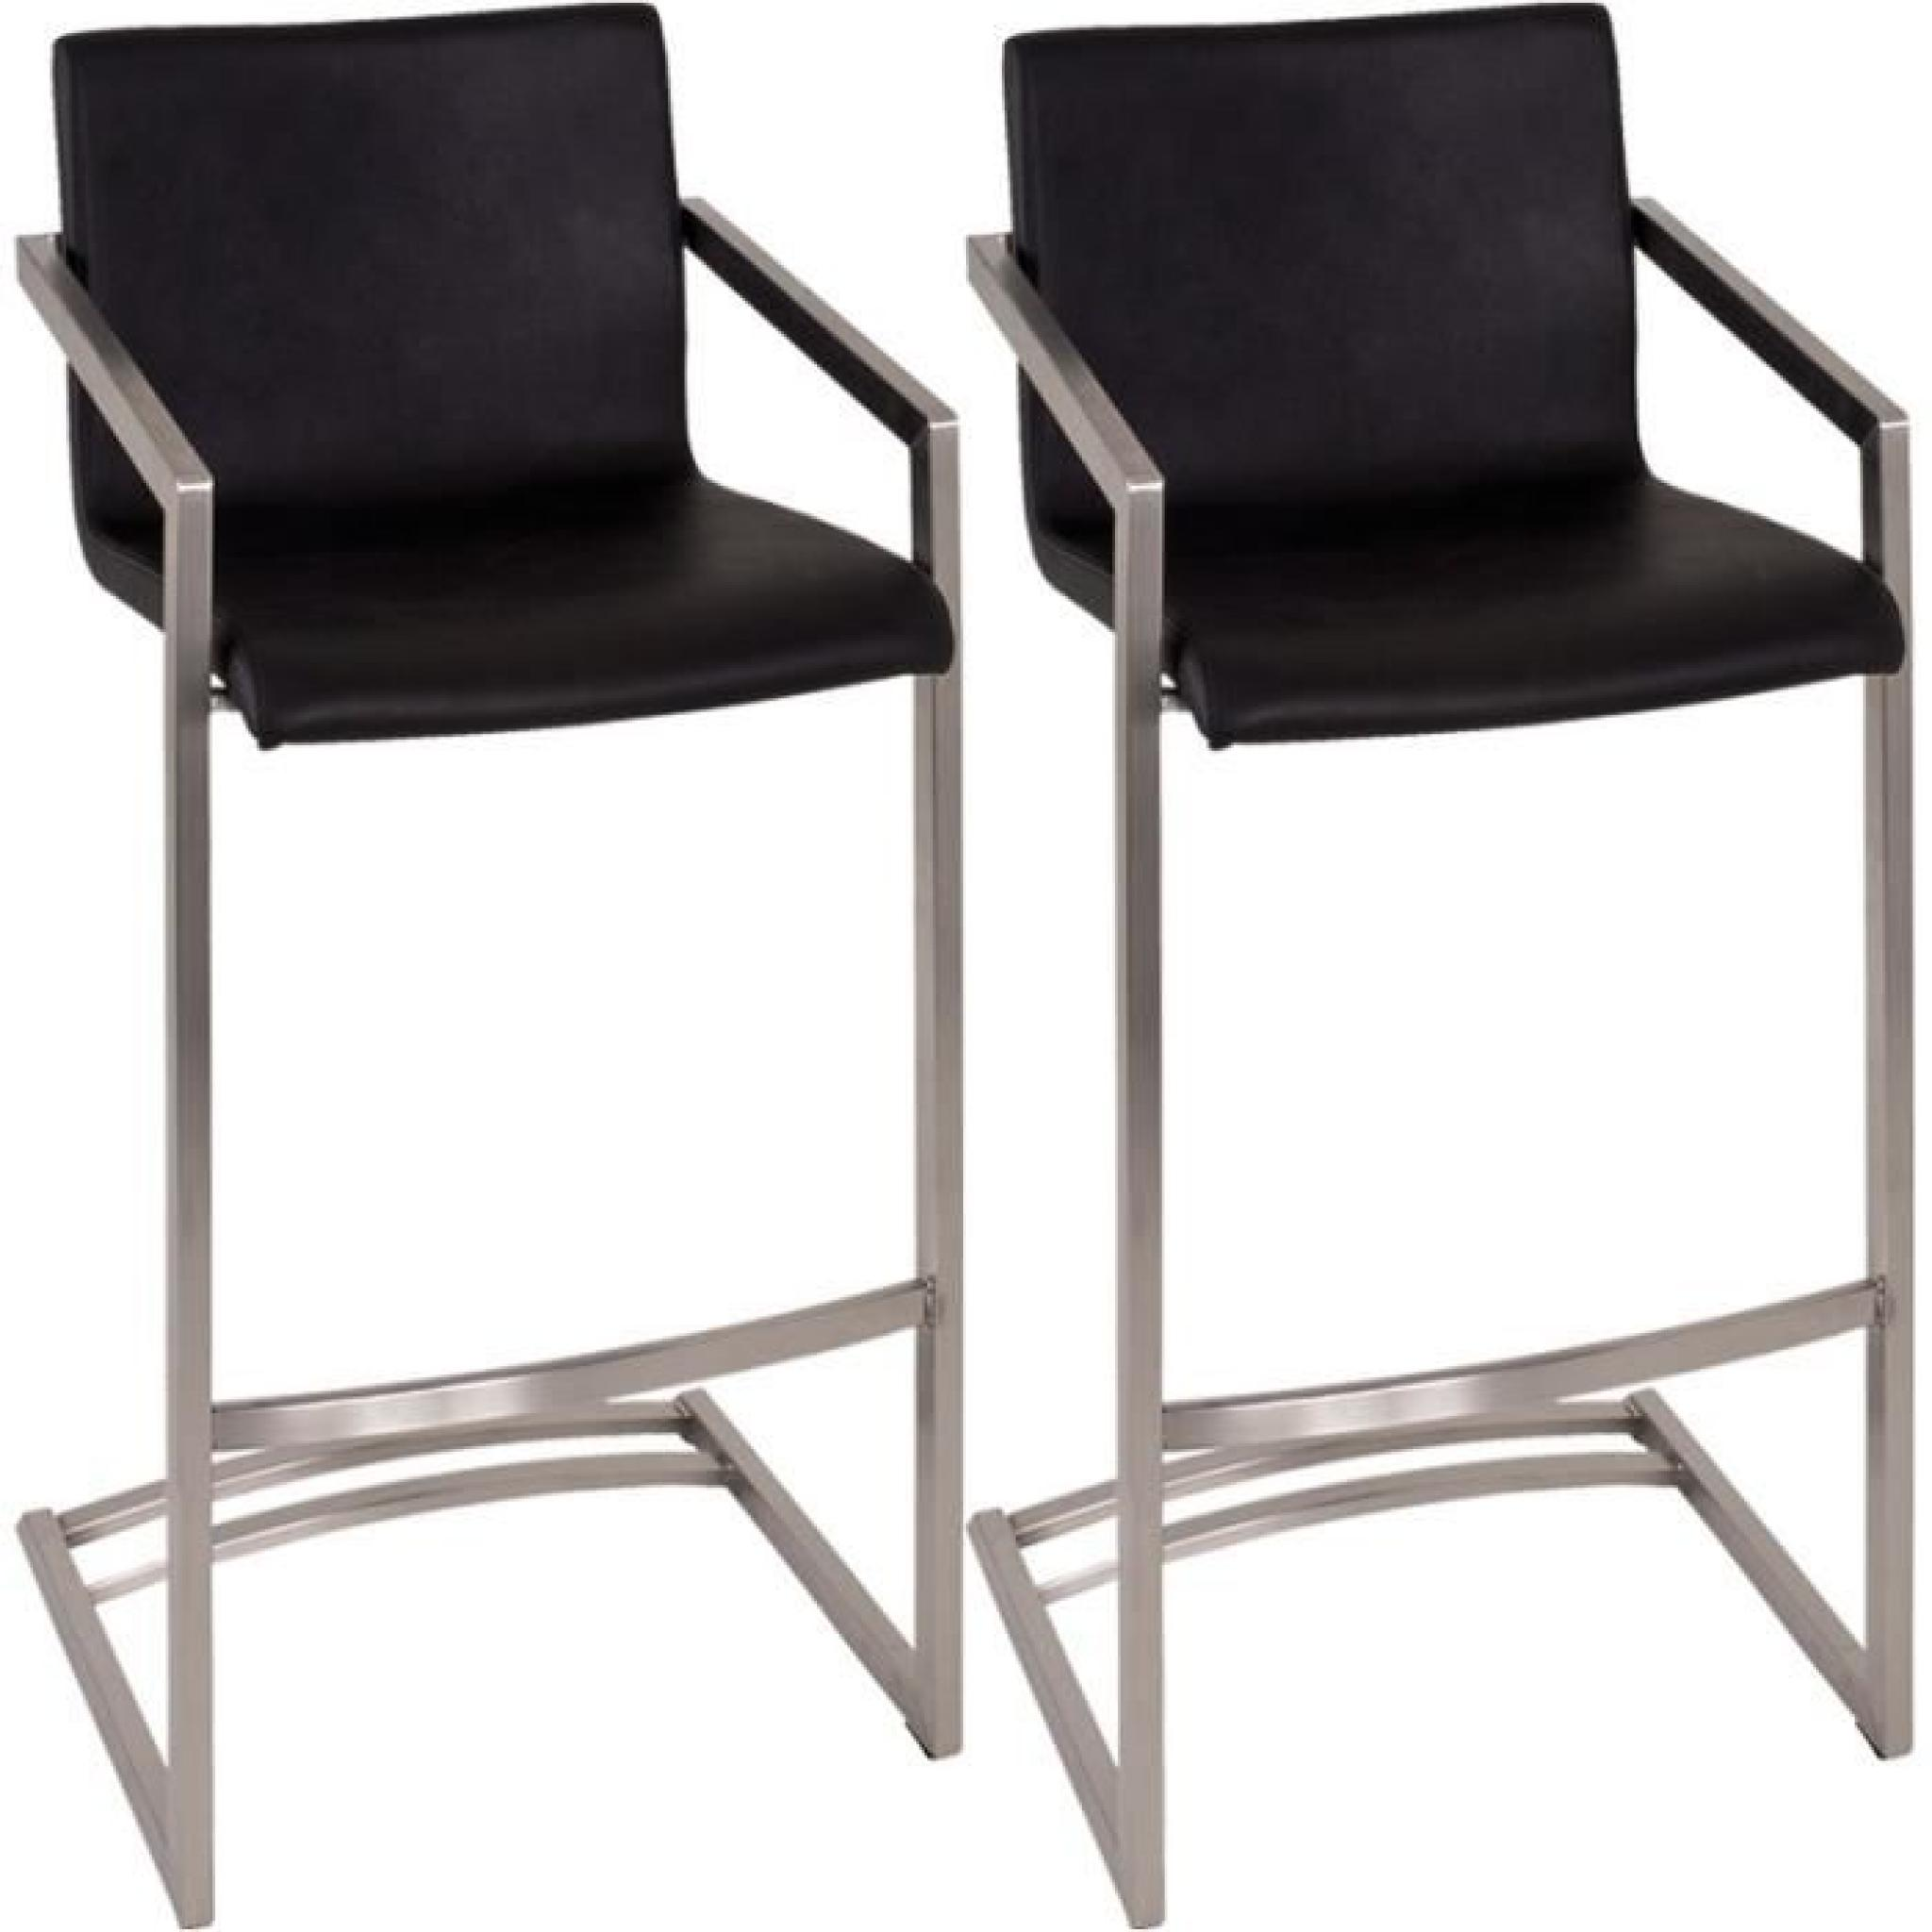 lot de 2 tabourets de bar en inox poli coloris achat vente tabouret de bar pas cher. Black Bedroom Furniture Sets. Home Design Ideas